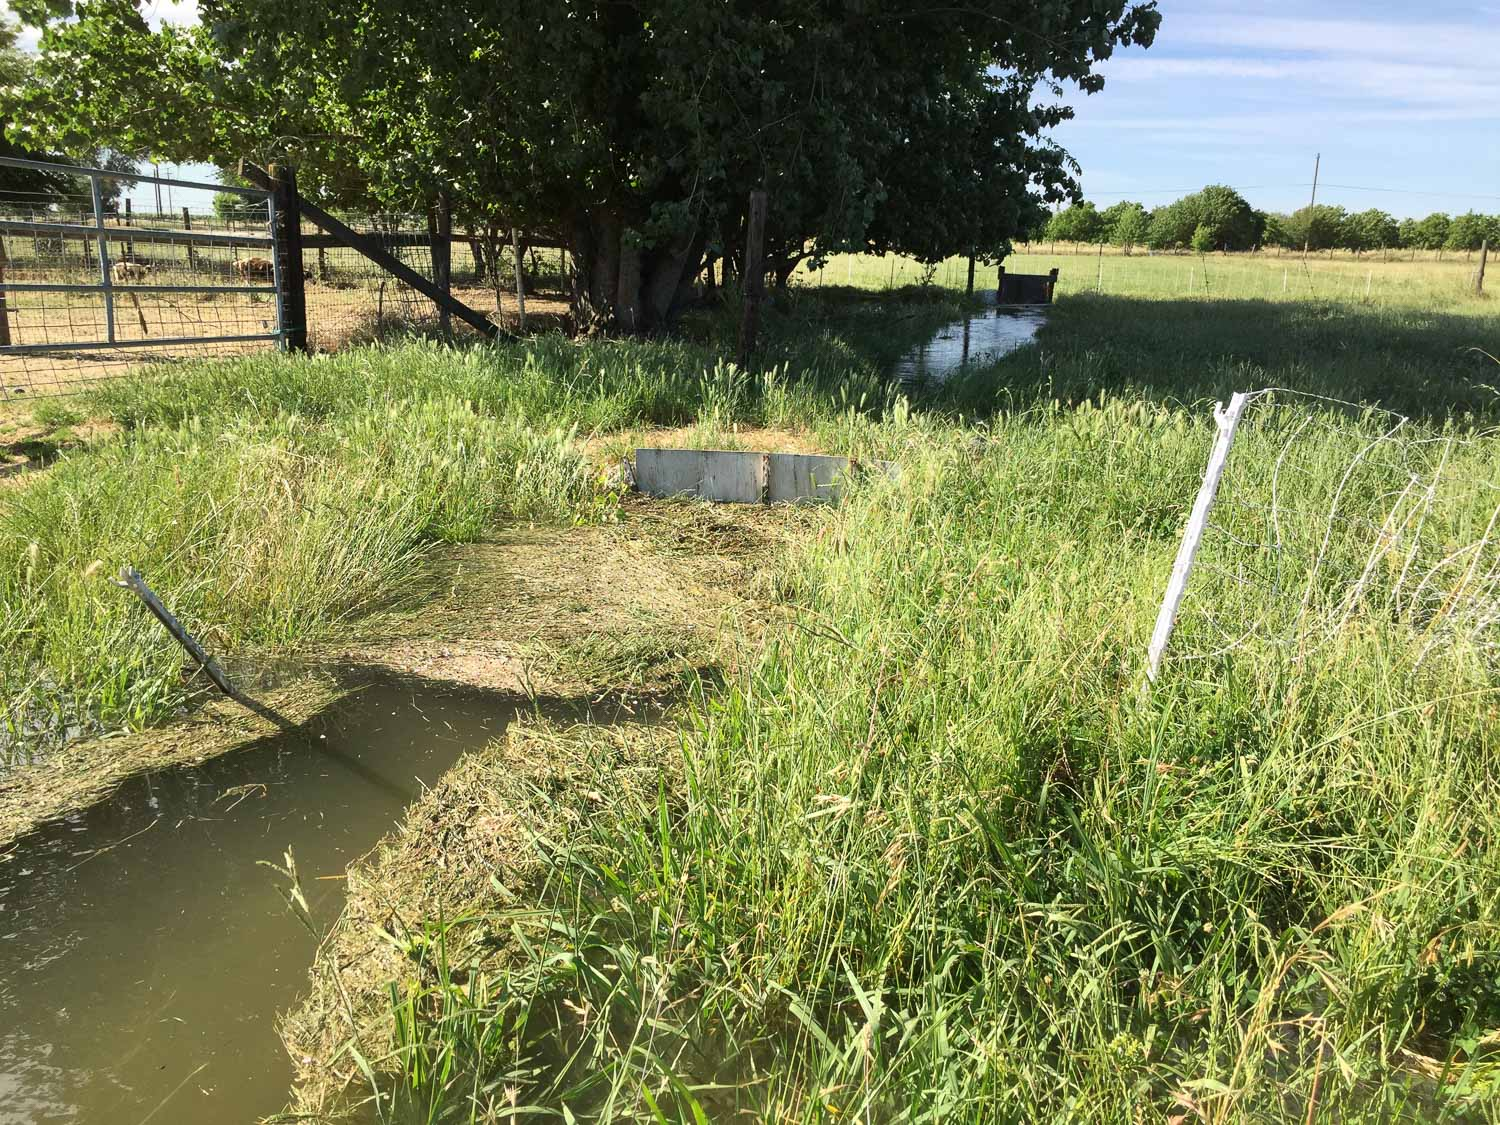 Weeds in irrigation ditch.